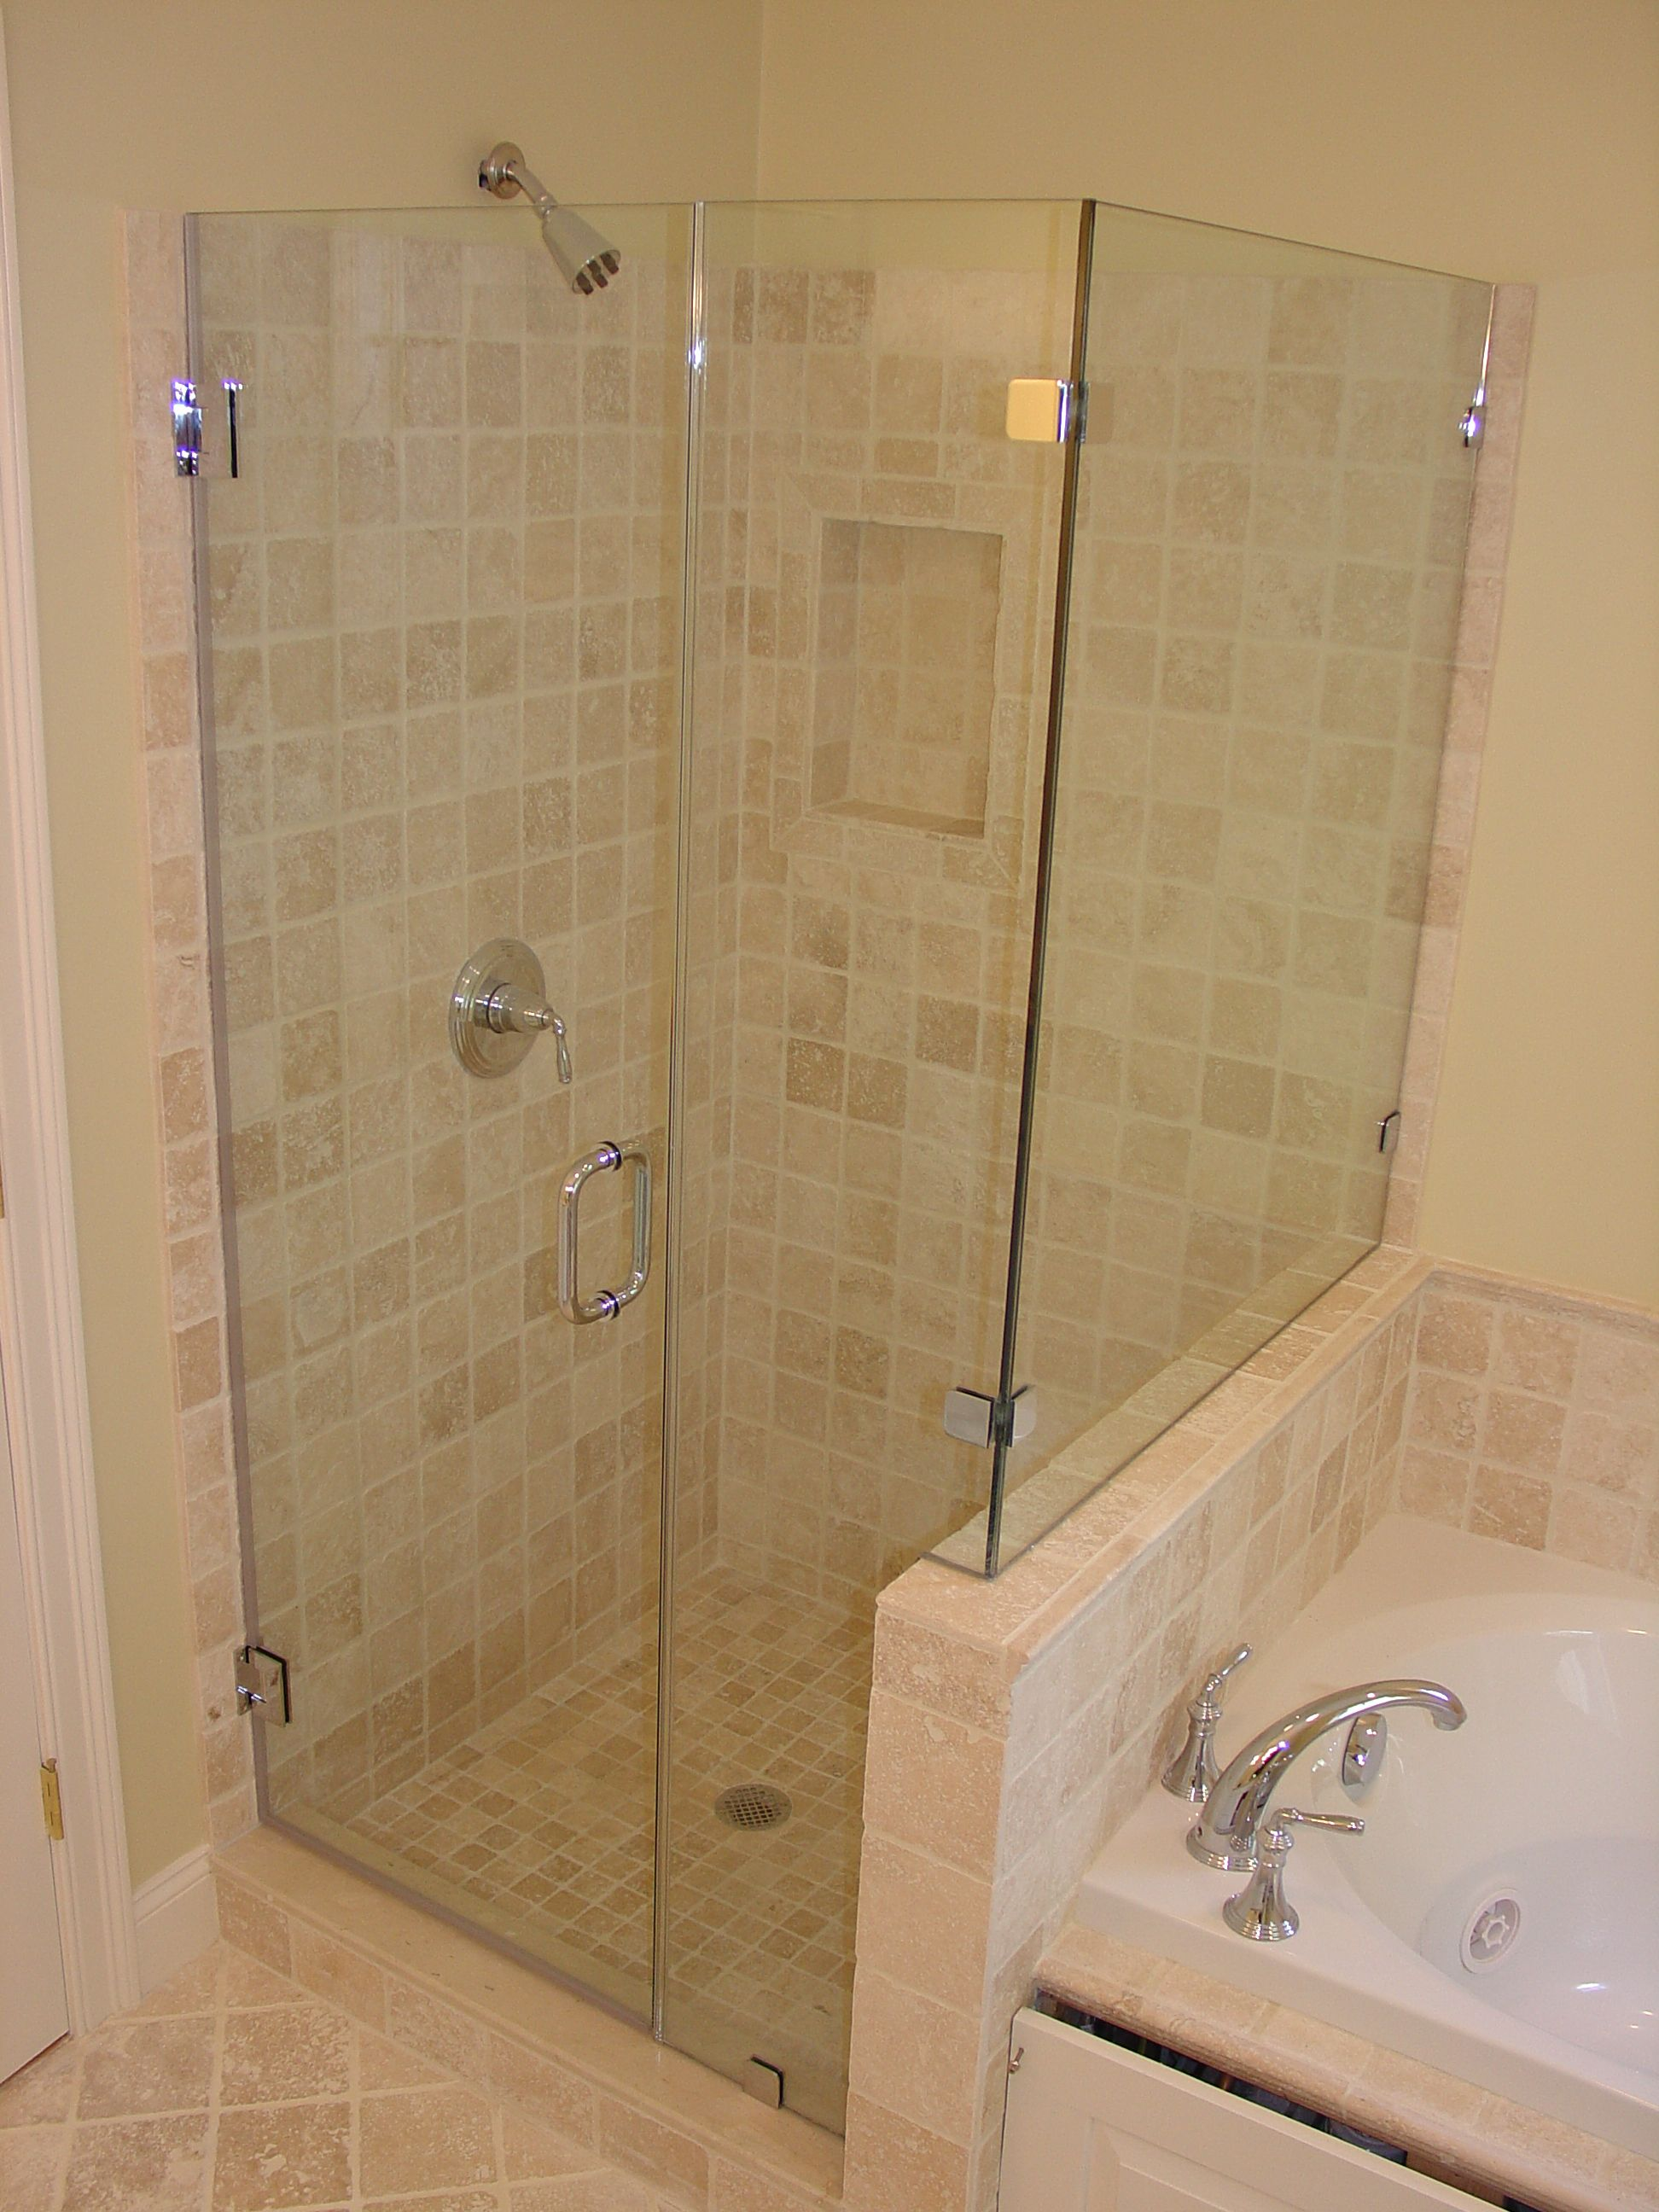 The glass shower ideas glass enclosed shower tub jpg up there is used allow  the decoration